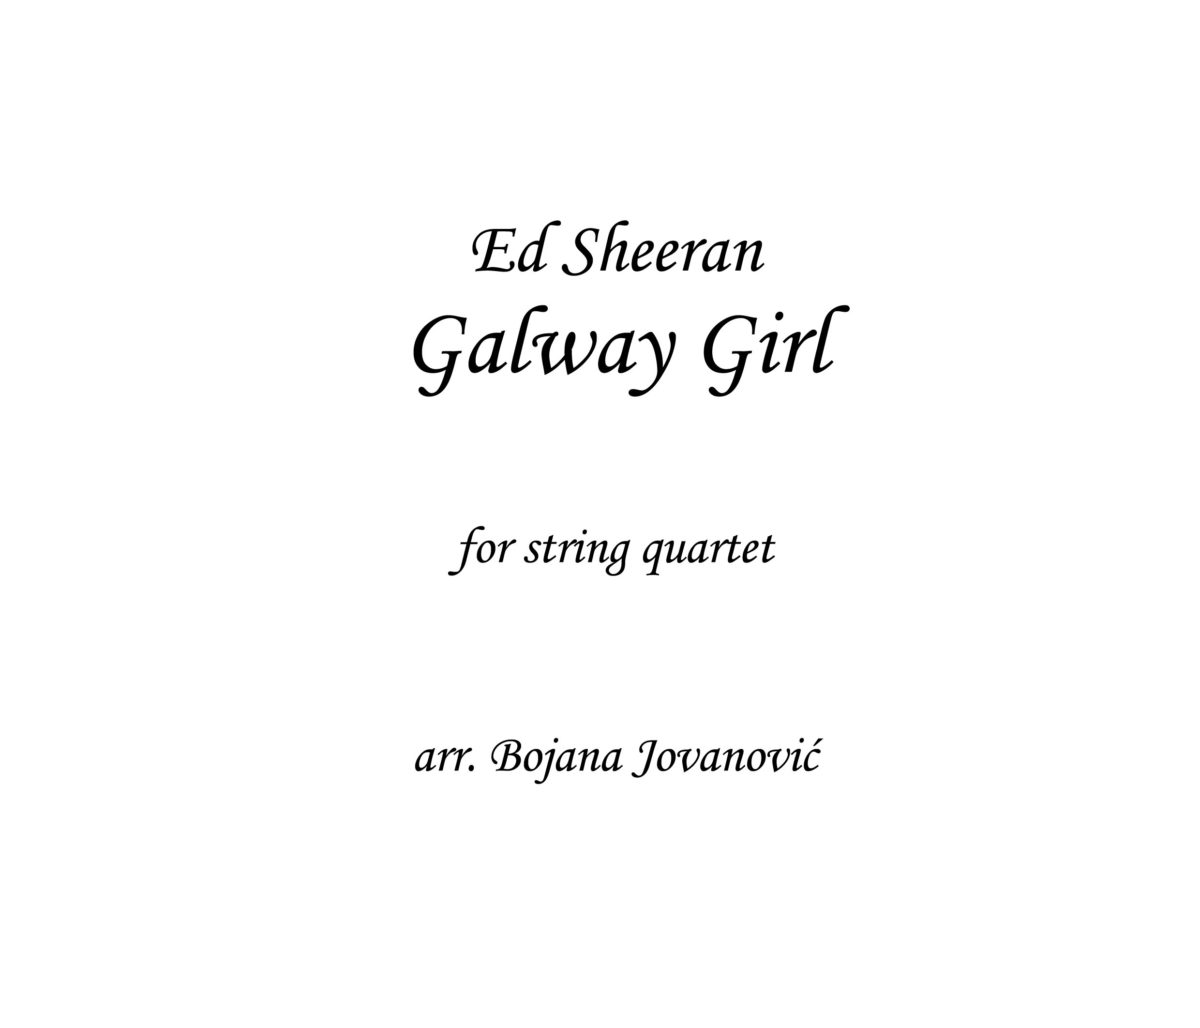 Galway girl Ed Sheeran Sheet music